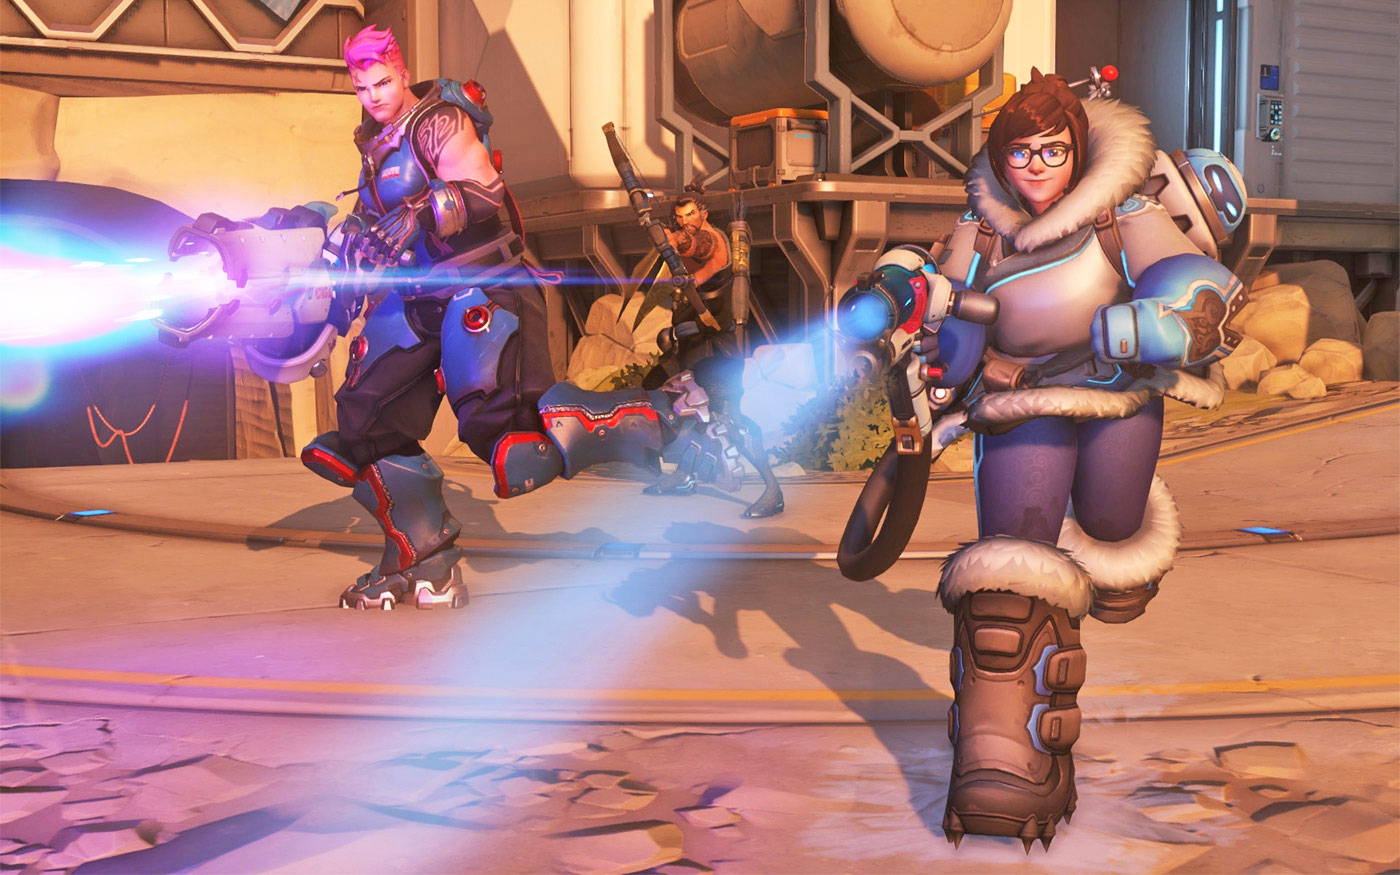 Facebook enters eSports arena with Blizzard deal